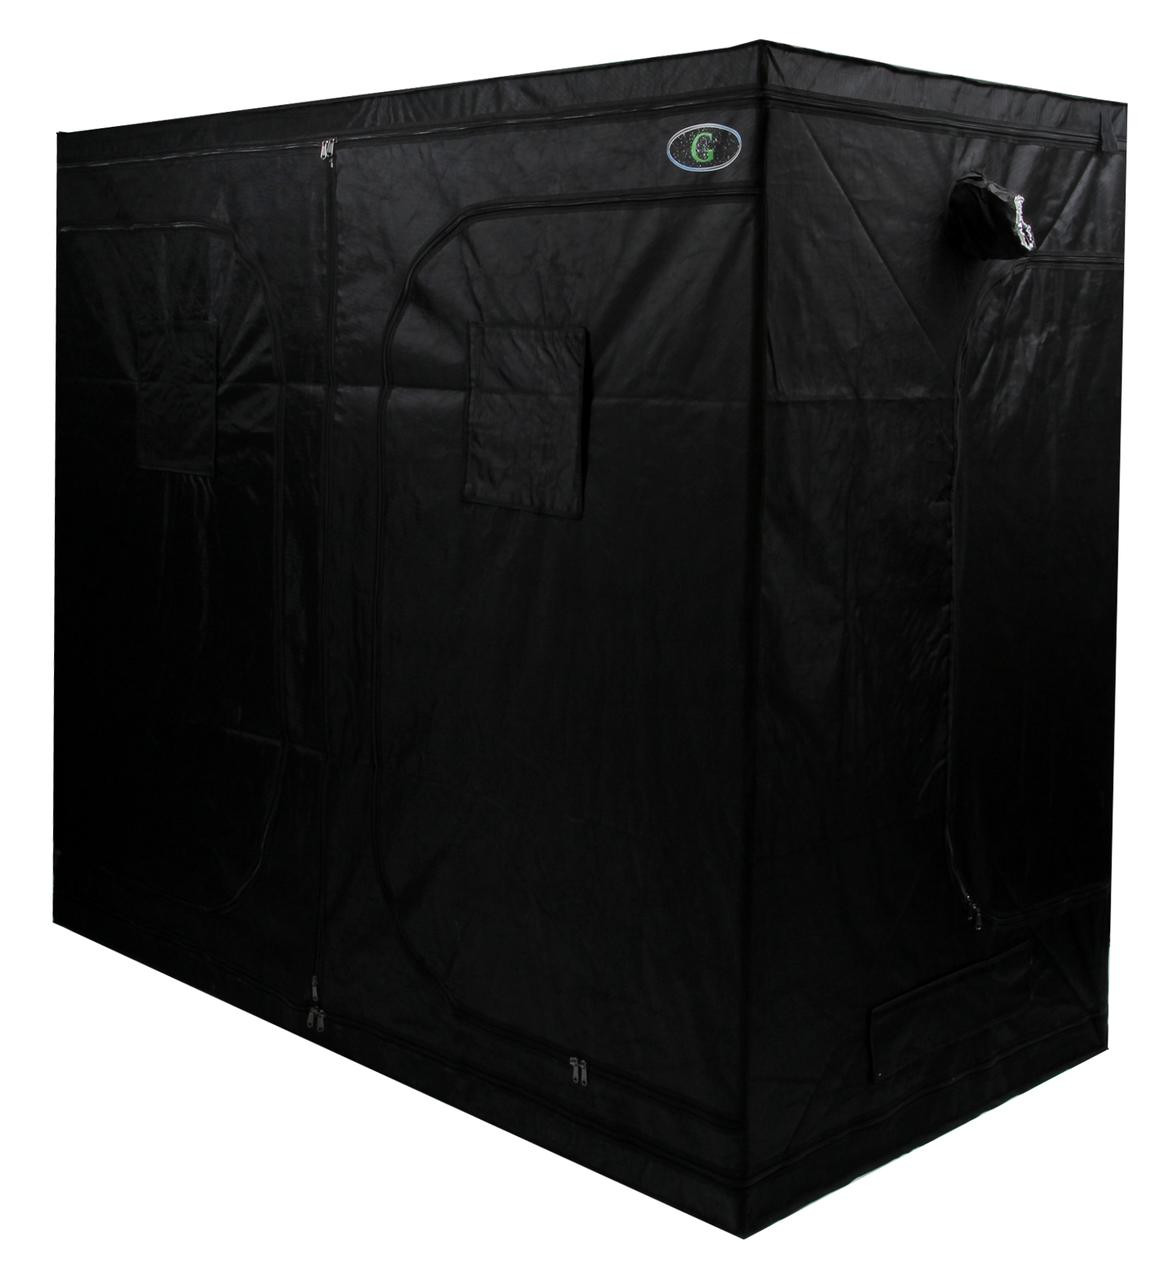 Dealzer Galaxy Grow Tents Superior Quality 2x4, 3x3, 4x4, 5x5, and 4x8 Foot